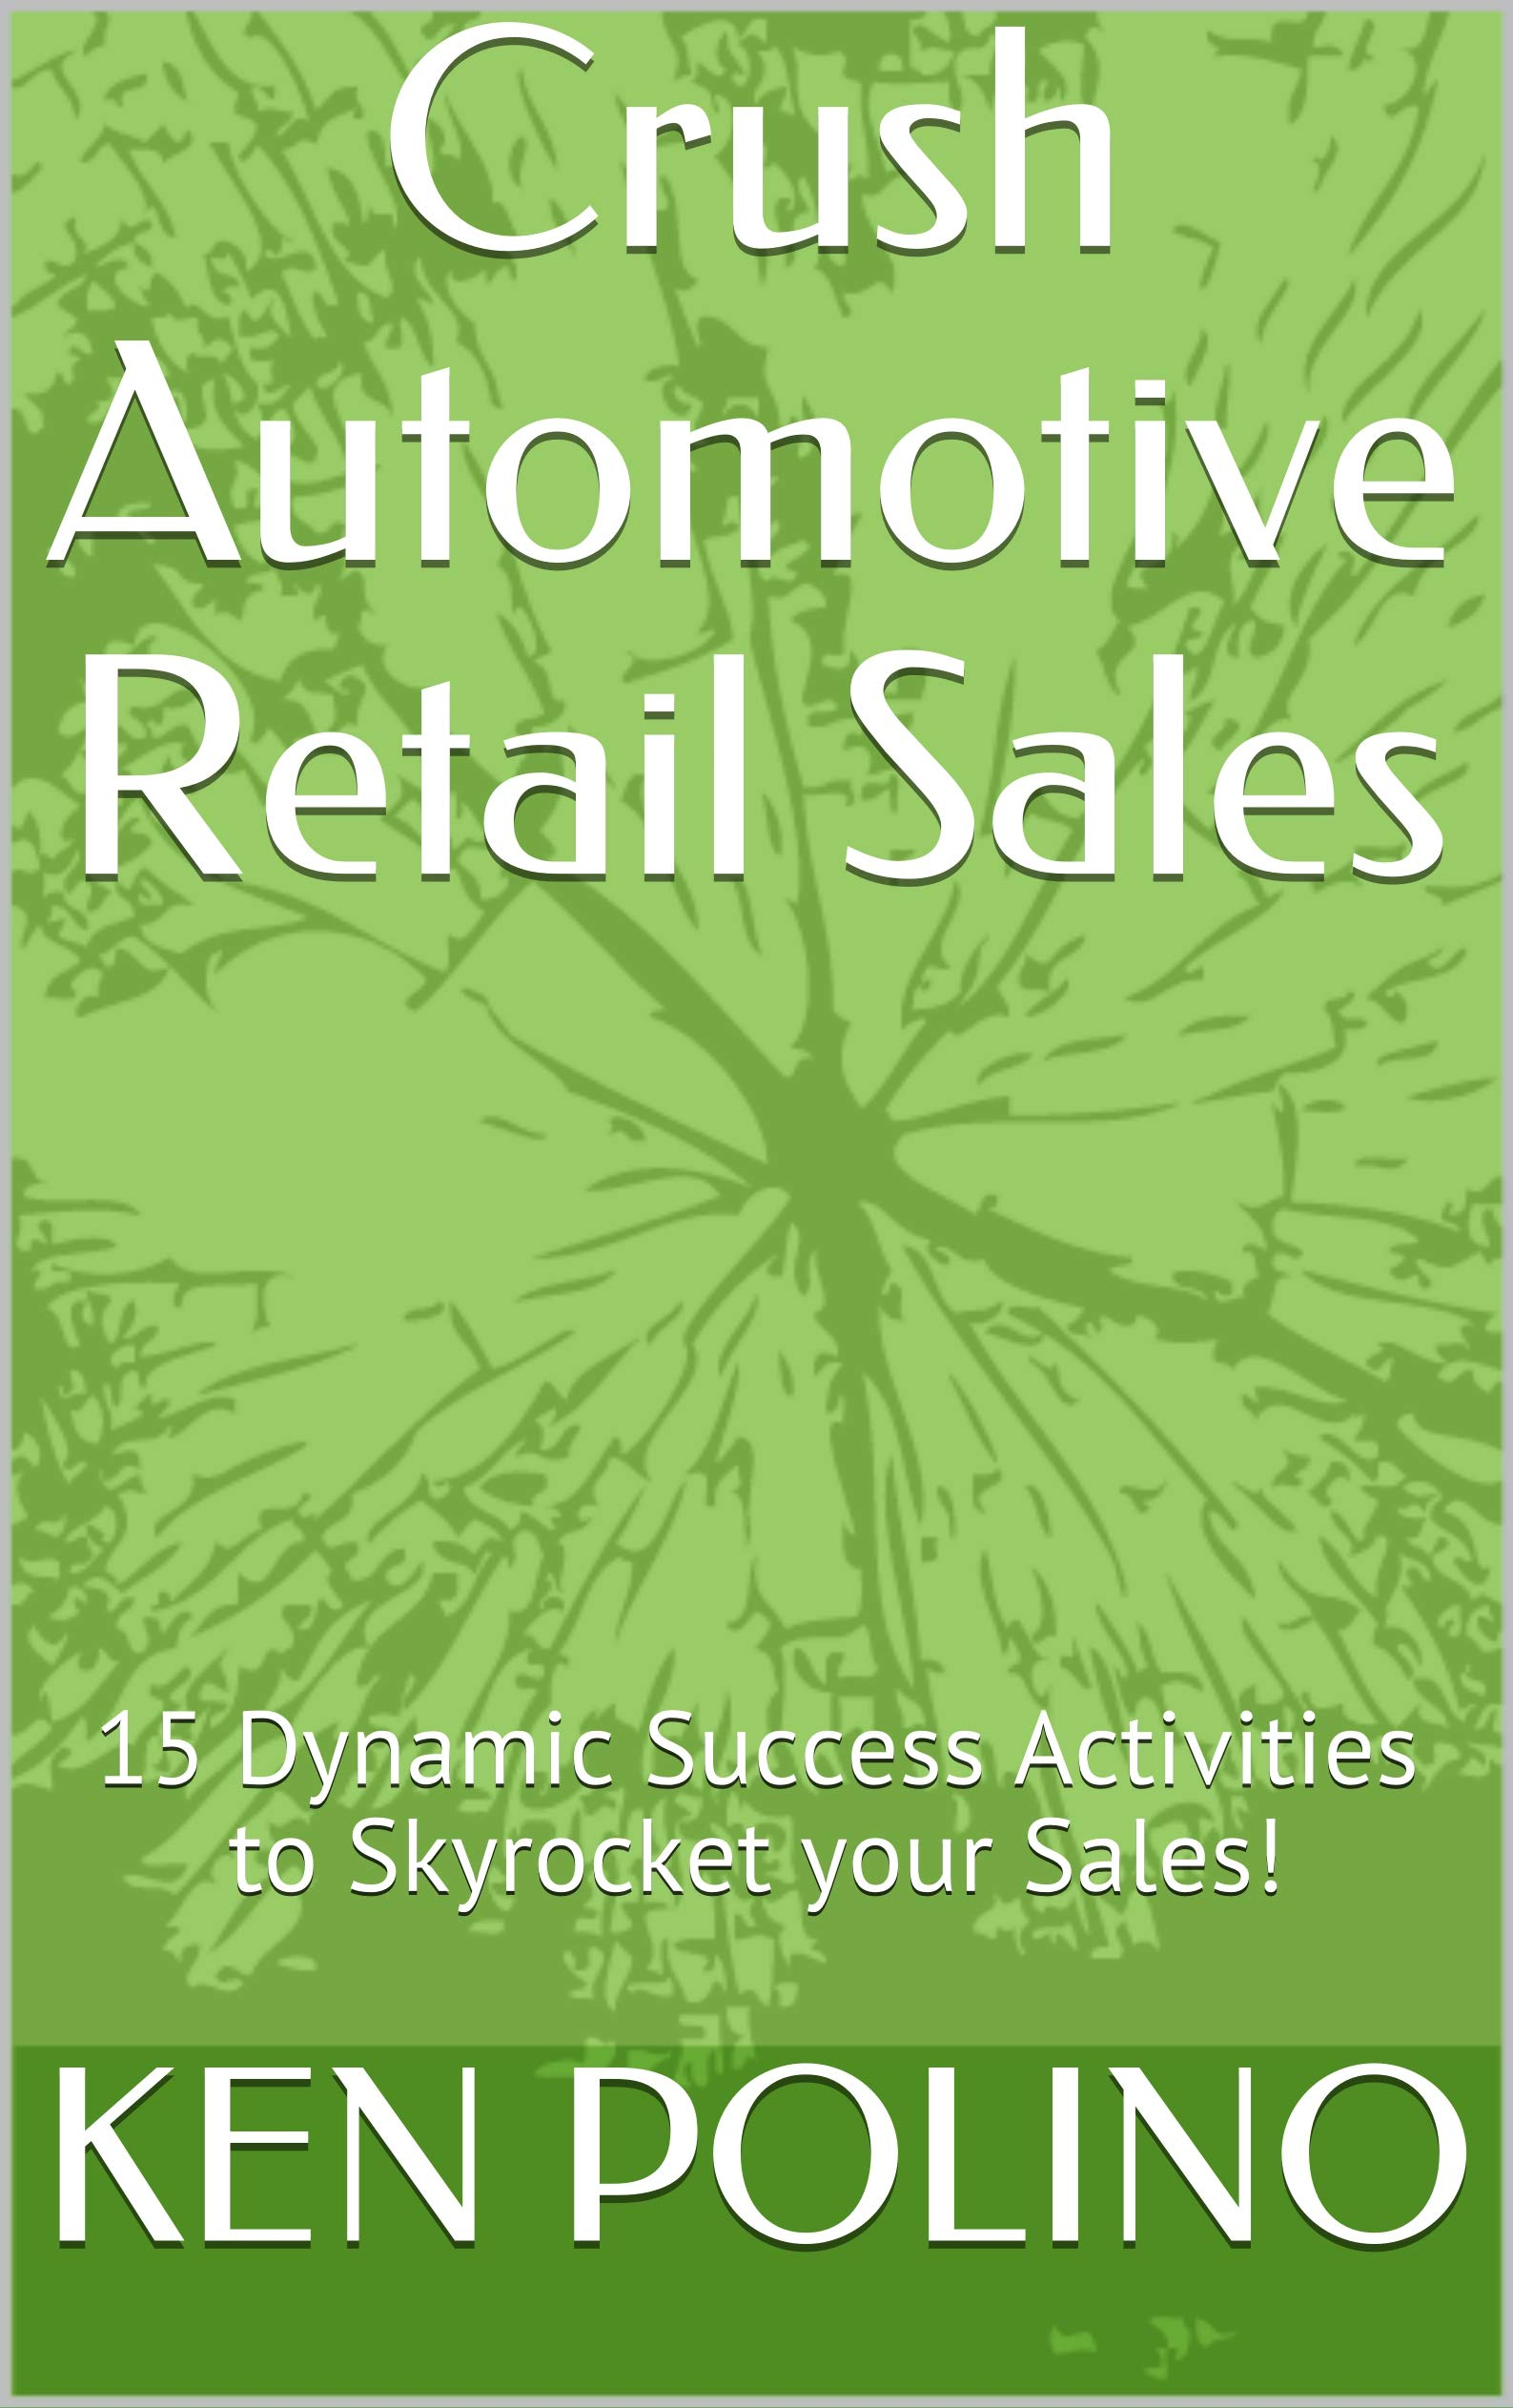 Crush Automotive Retail Sales: 15 Dynamic Success Activities to Skyrocket your Sales!